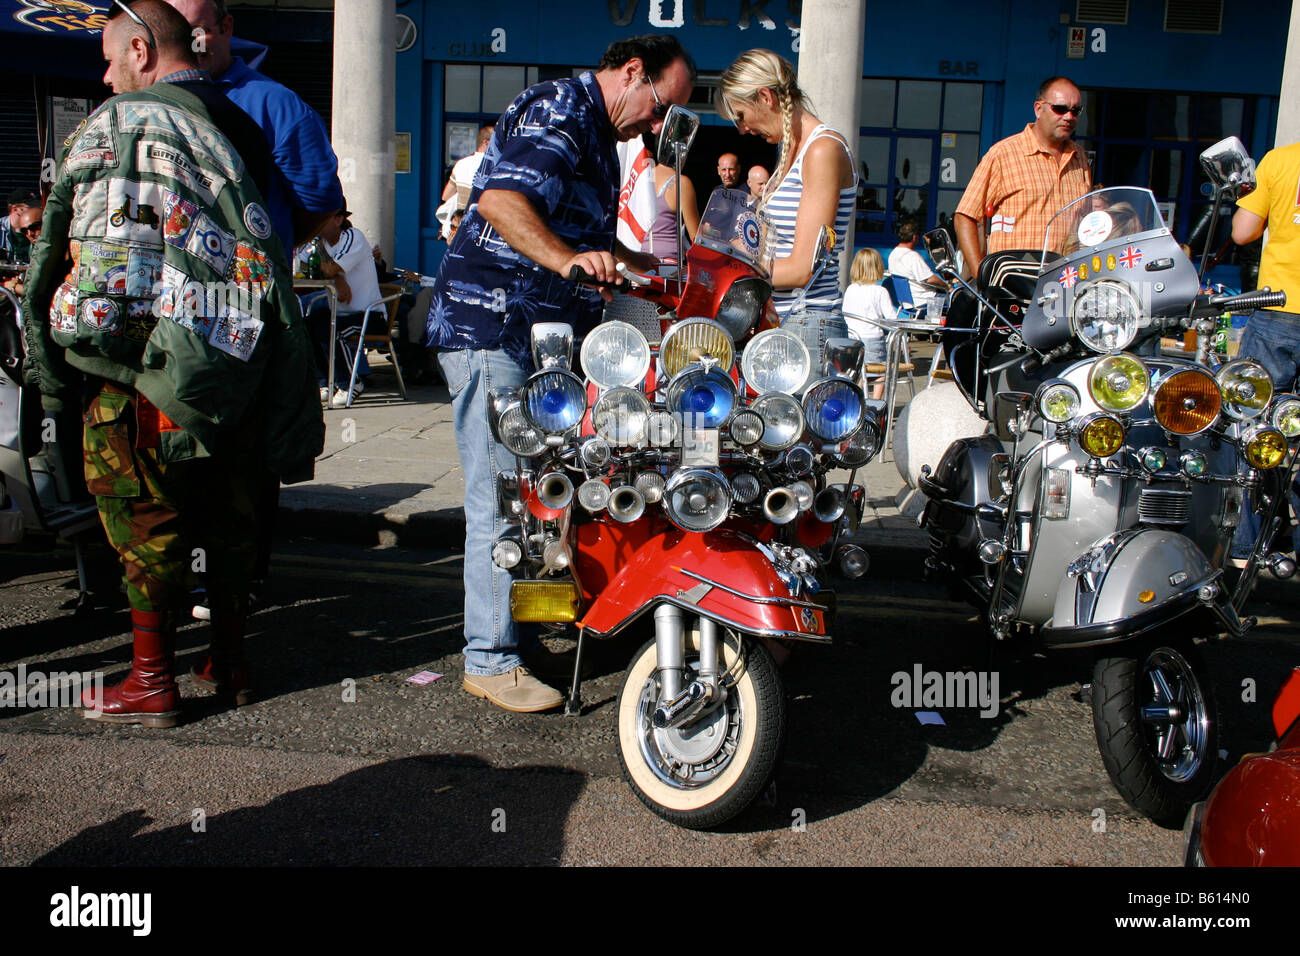 Rally Motor Credit >> Mod Scooter 1960s Stock Photos & Mod Scooter 1960s Stock ...